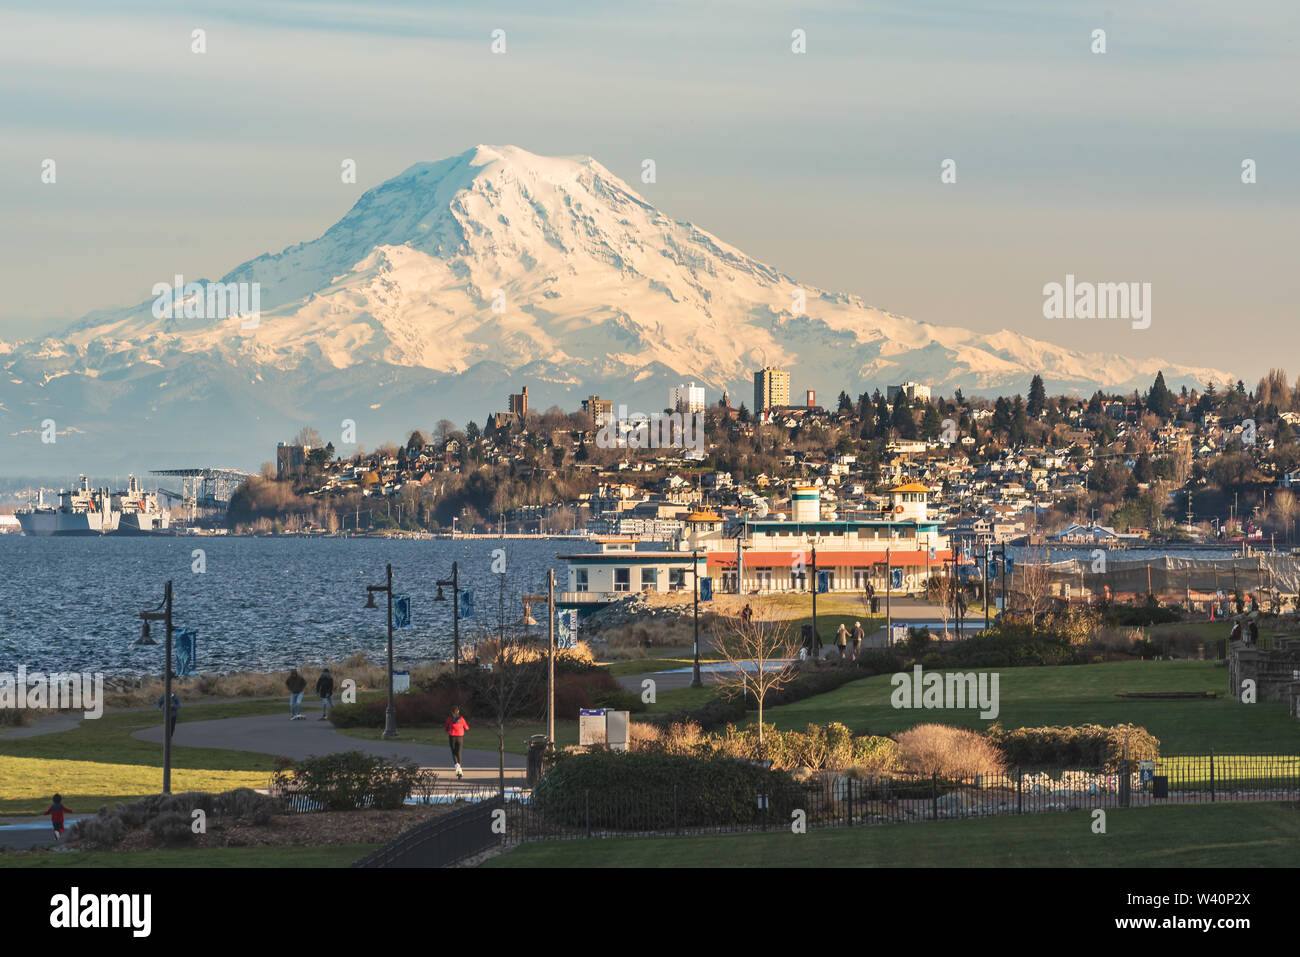 Mt Rainier Hovers Over Downtown Tacoma and Commencement Bay as Seen from Point Ruston with people walking and Riding Bikes - Stock Image